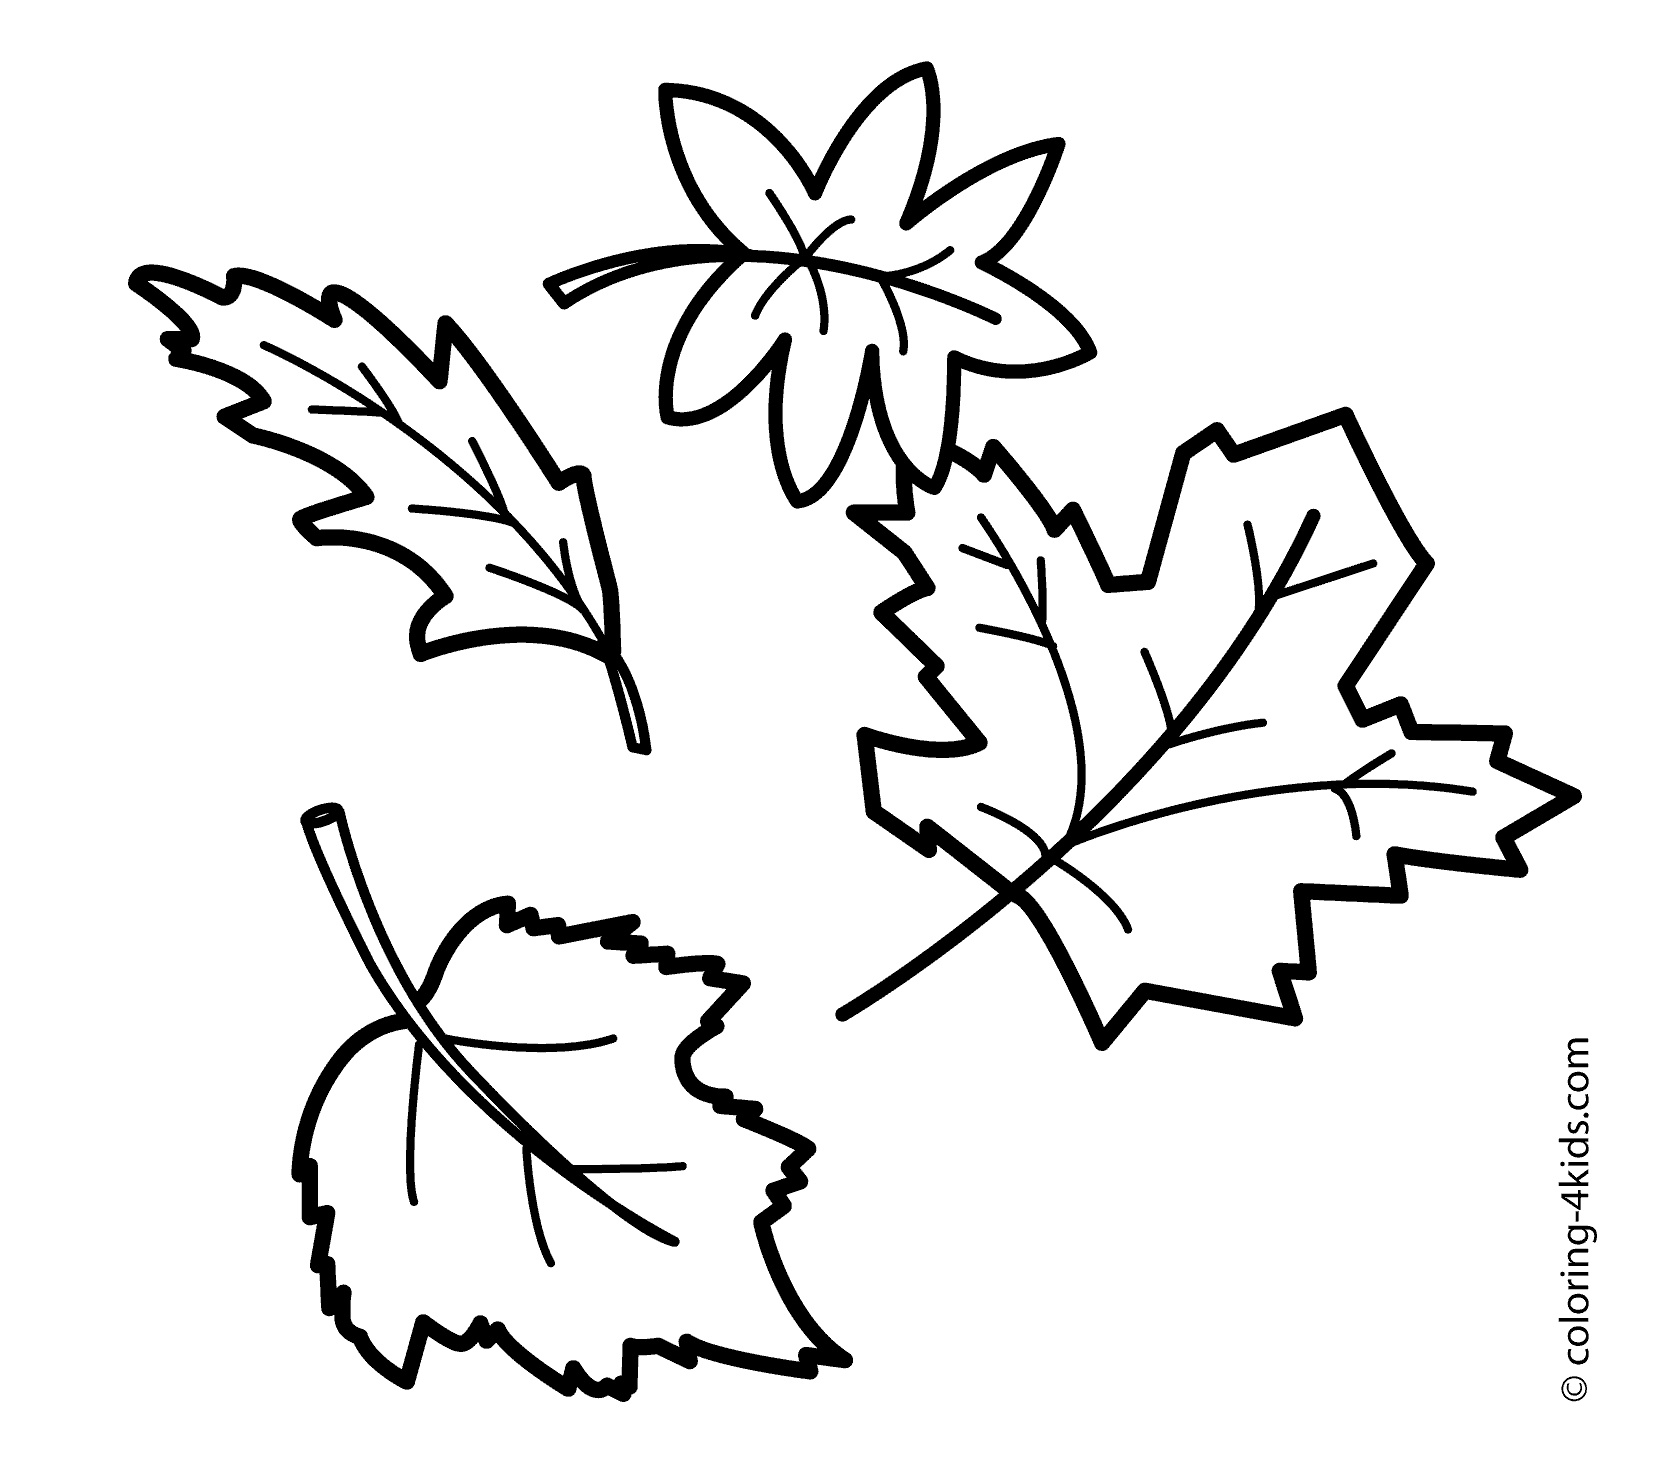 1661x1483 Last Chance Pictures Of Leaves To Color Oak Leaf Nature Coloring